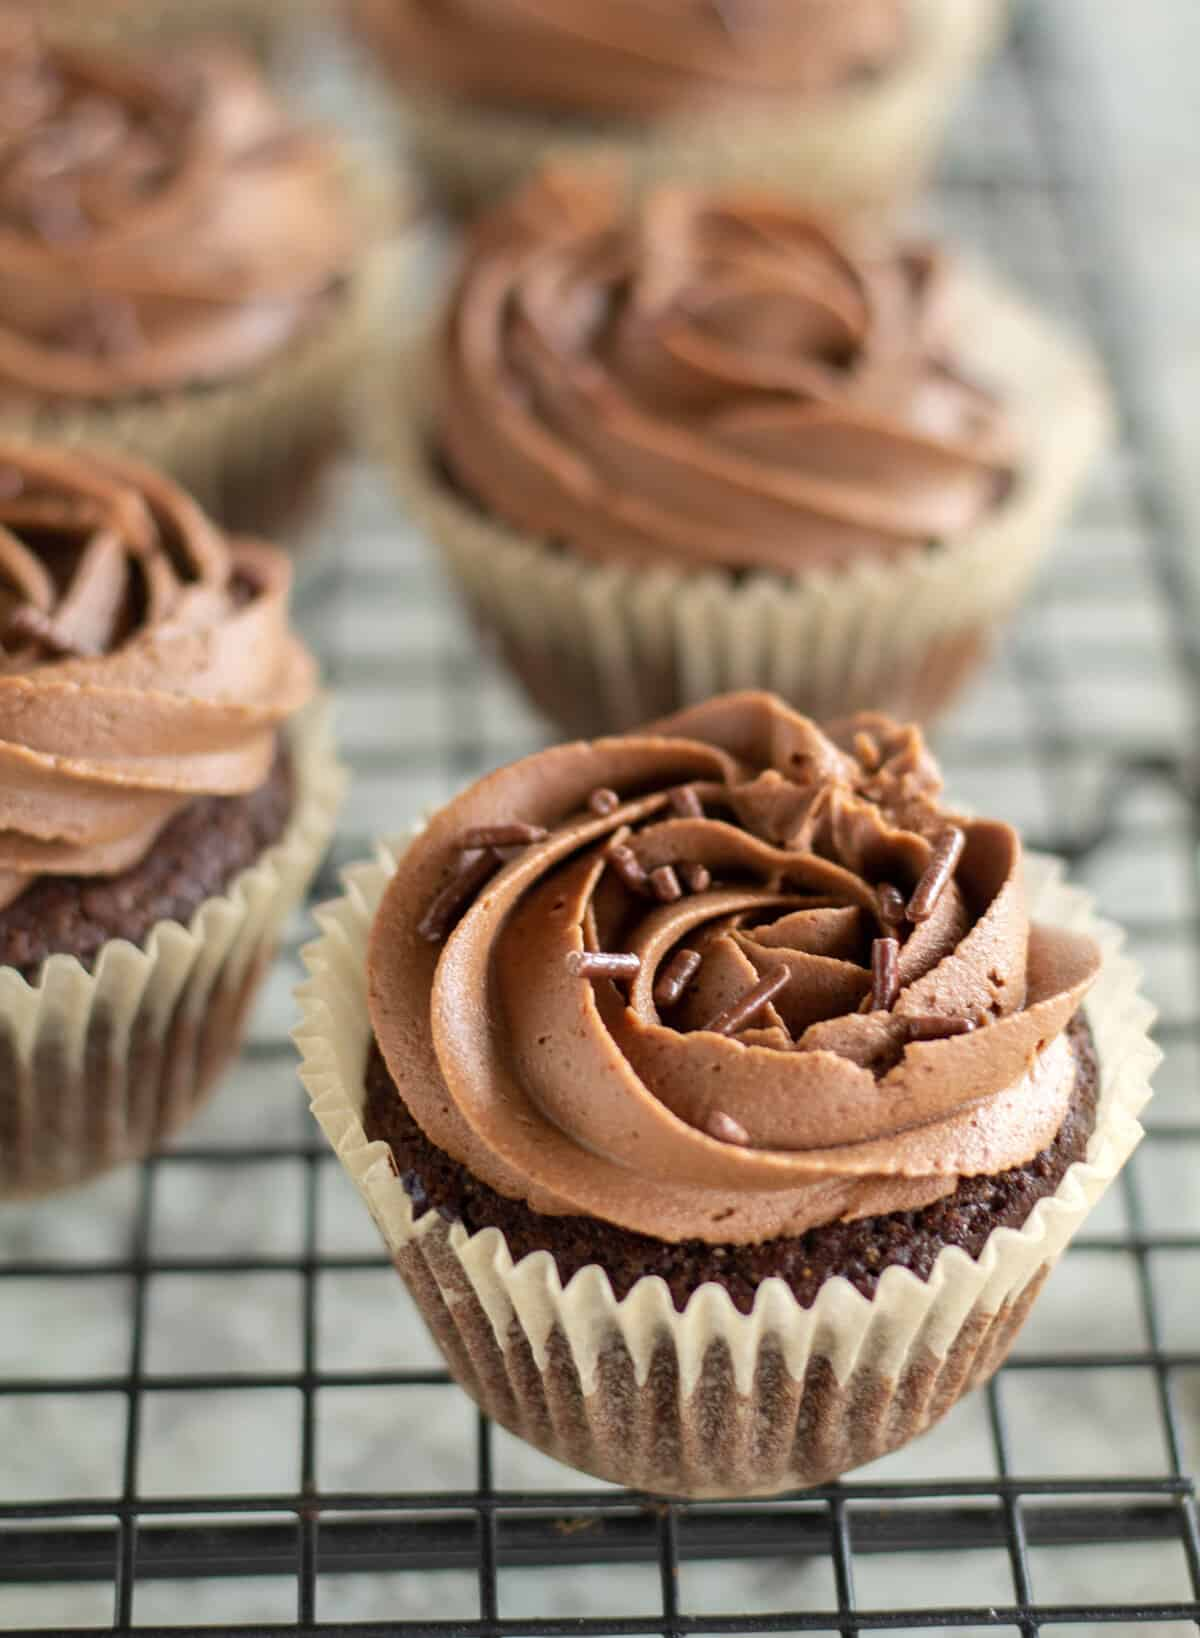 cupcakes with chocolate frosting on cooling rack with sprinkles